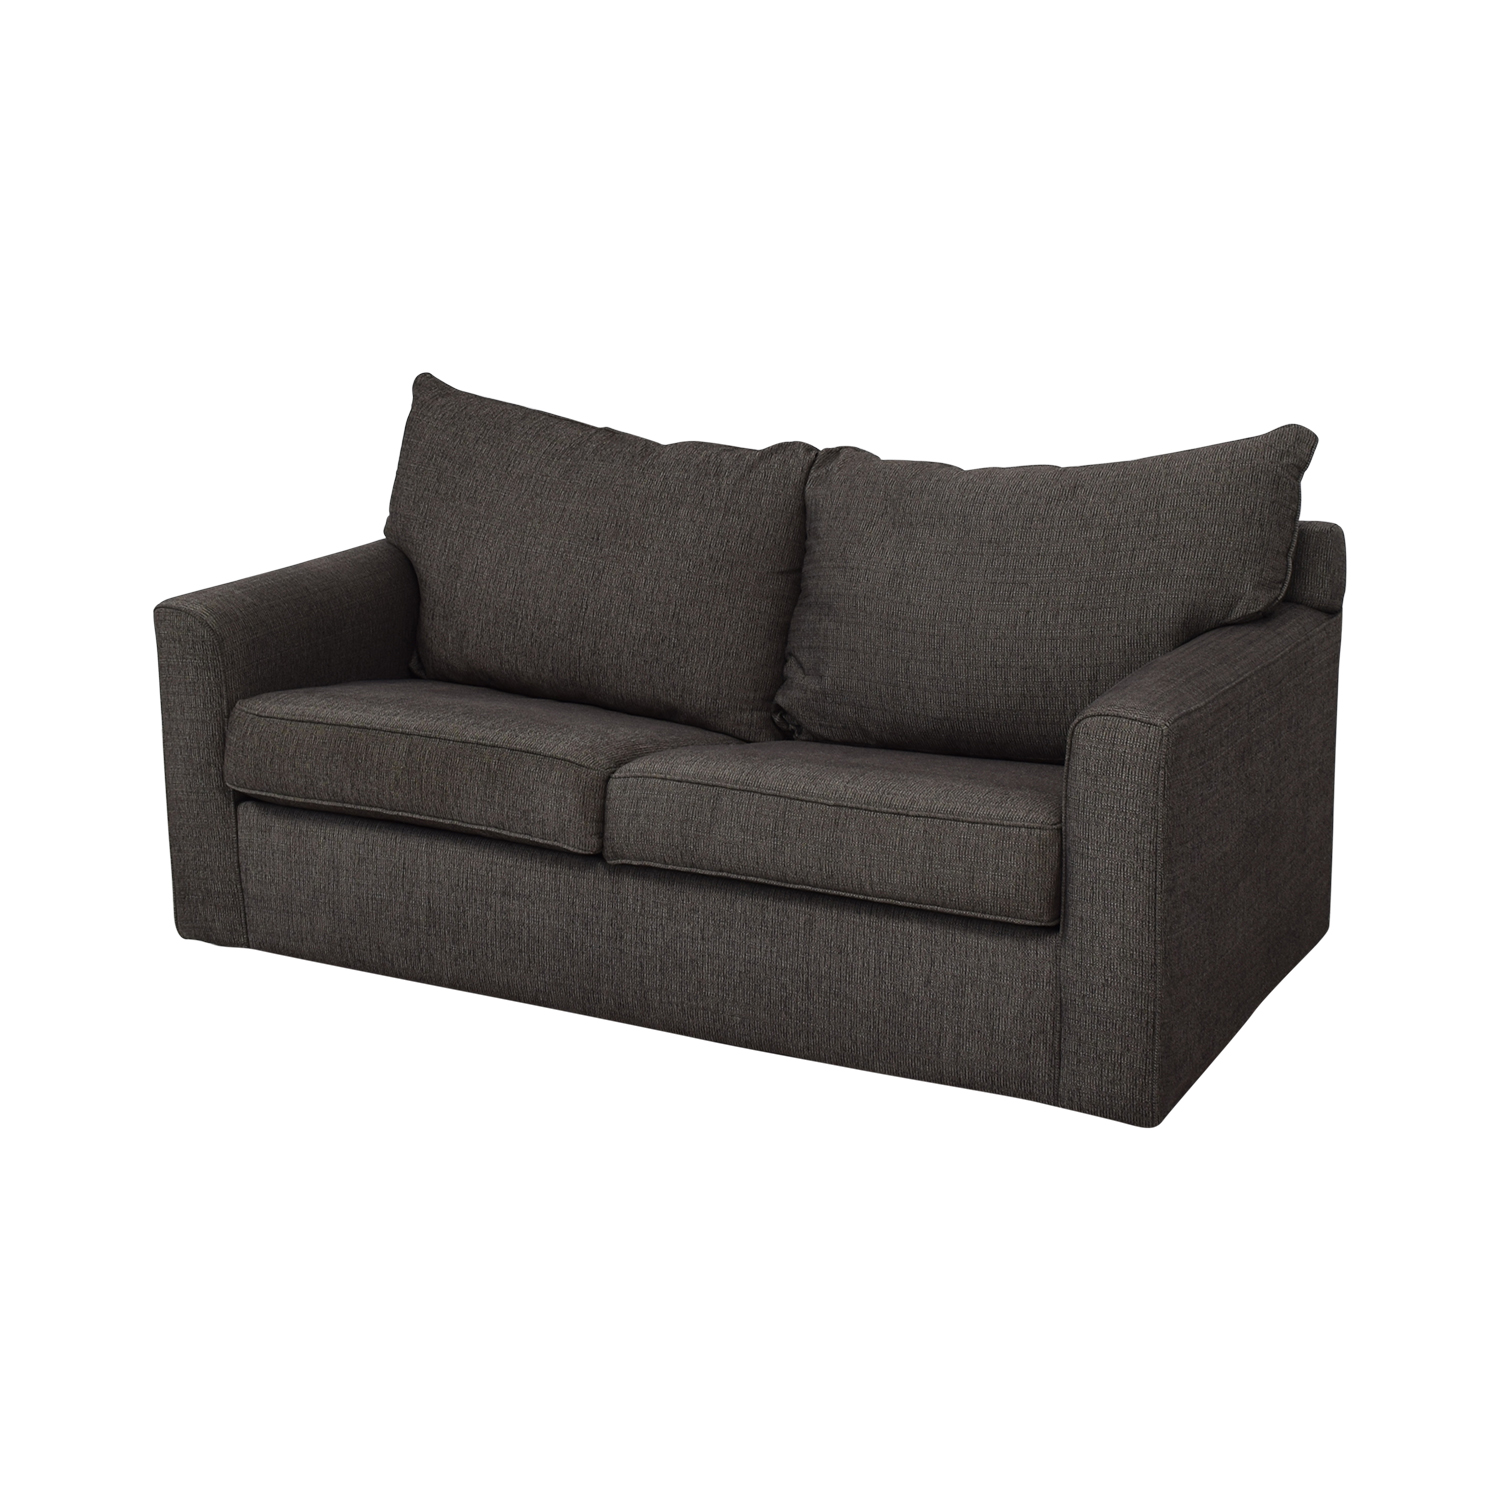 Raymour & Flanigan Raymour & Flanigan Trayce Chenille Full Sleeper Sofa for sale